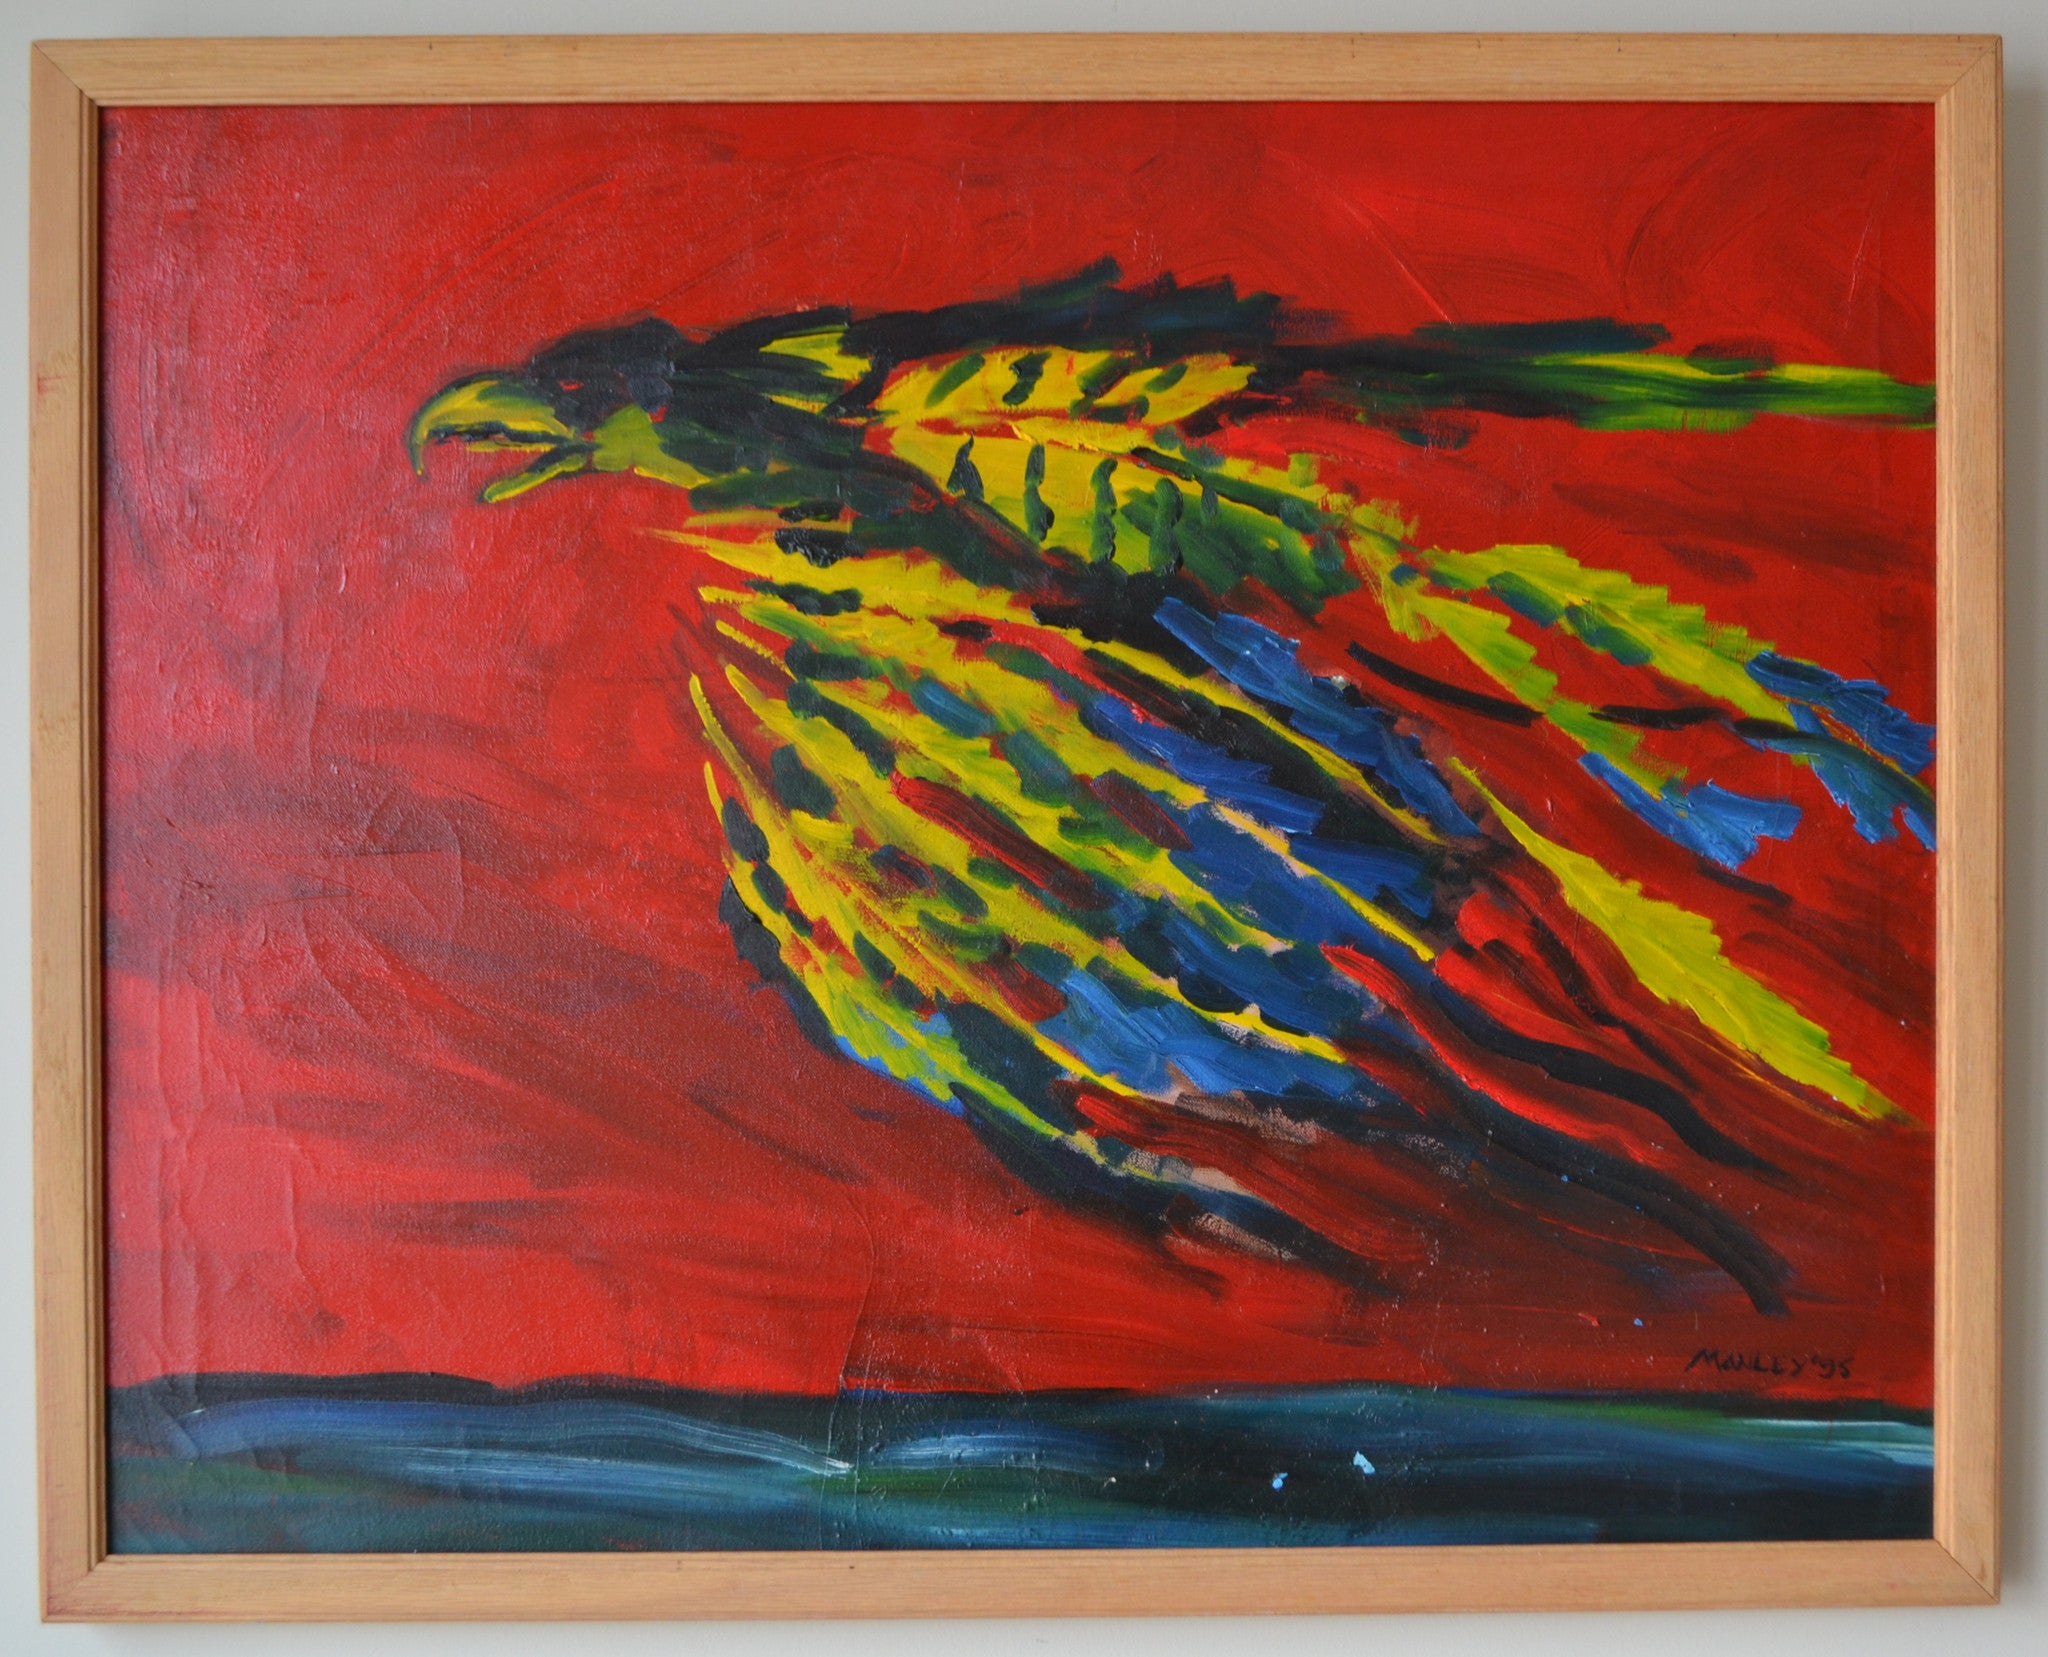 Spirit Bird painting by Greg Manly